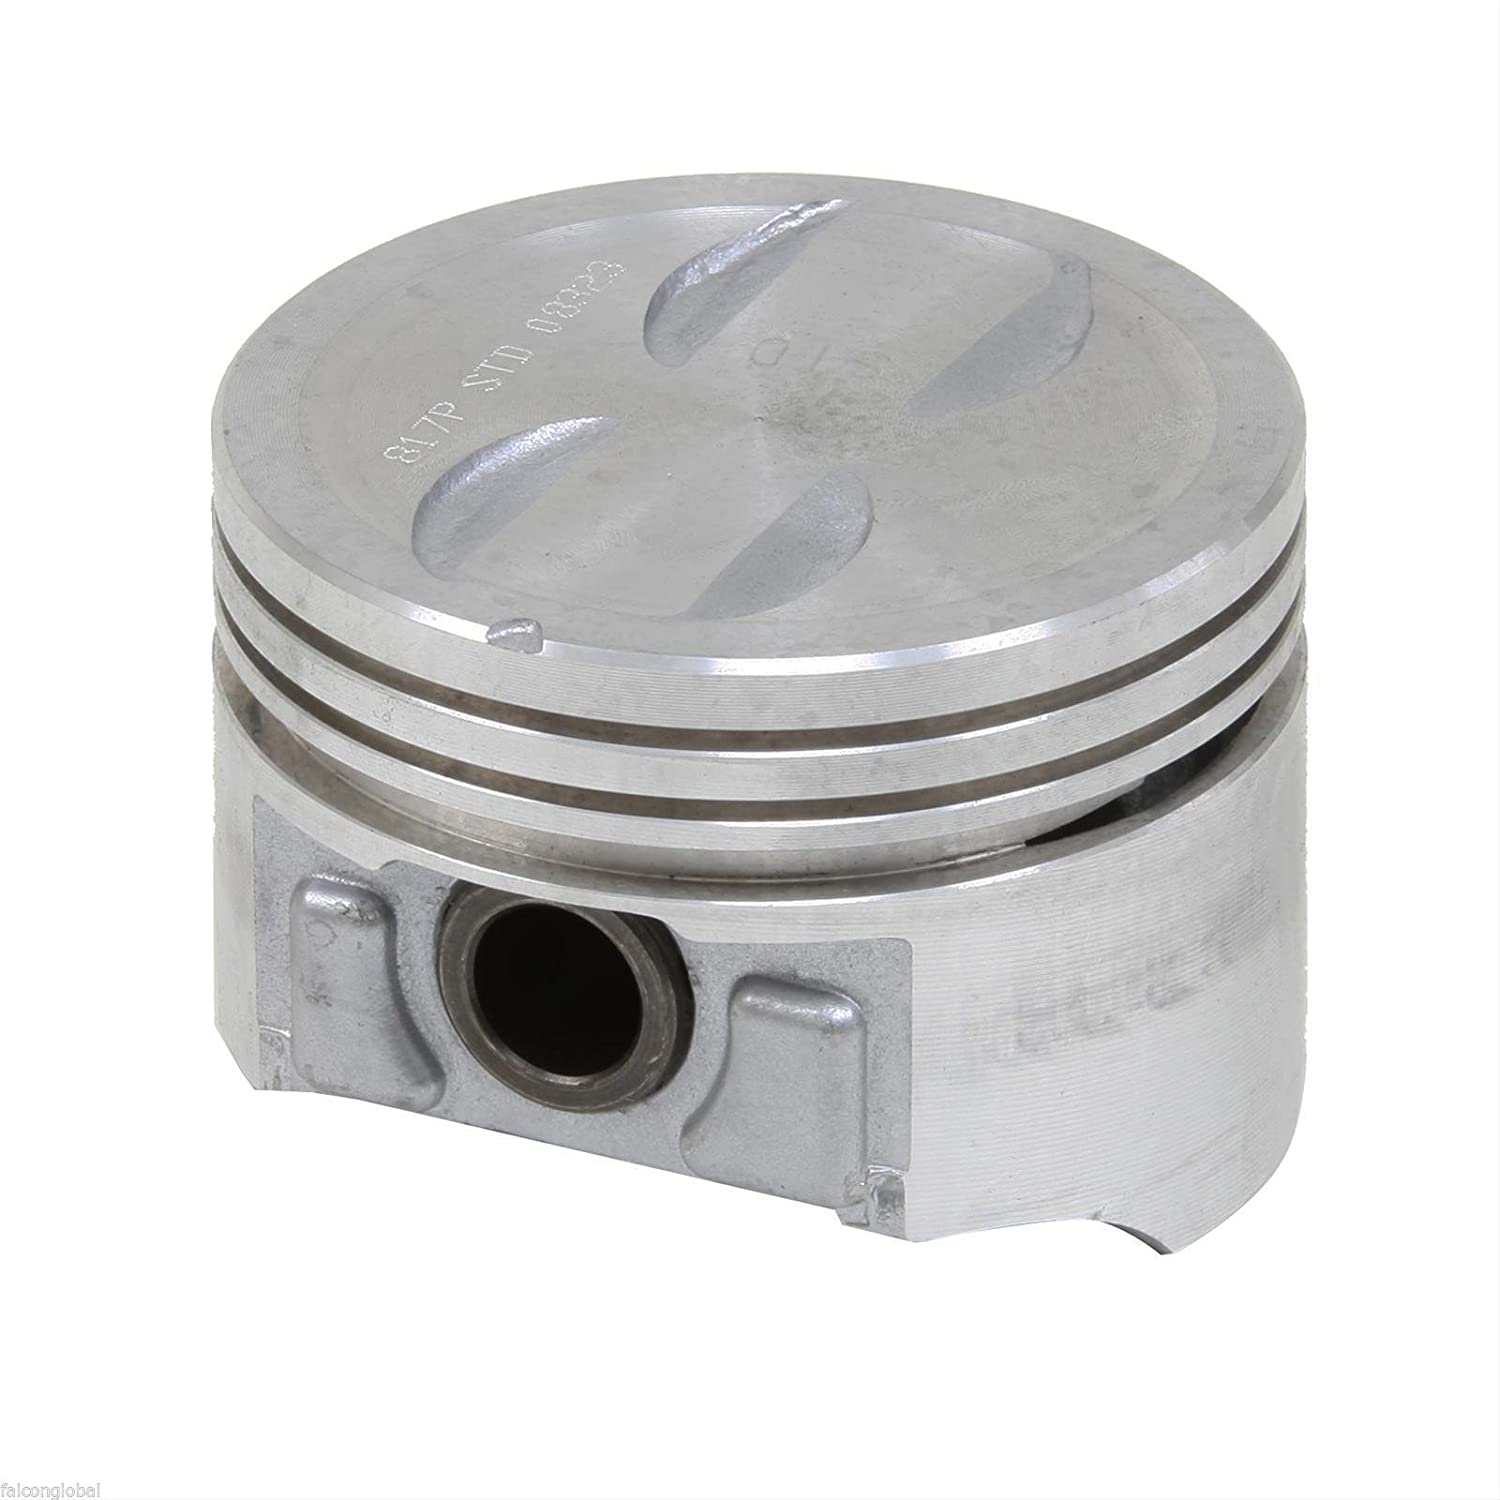 1996-02 Sealed Power Chevy 305 5.0 VORTEC V8 Cast Pistons+Rings Kit .030 Bore 3.766 Choice of sizes.